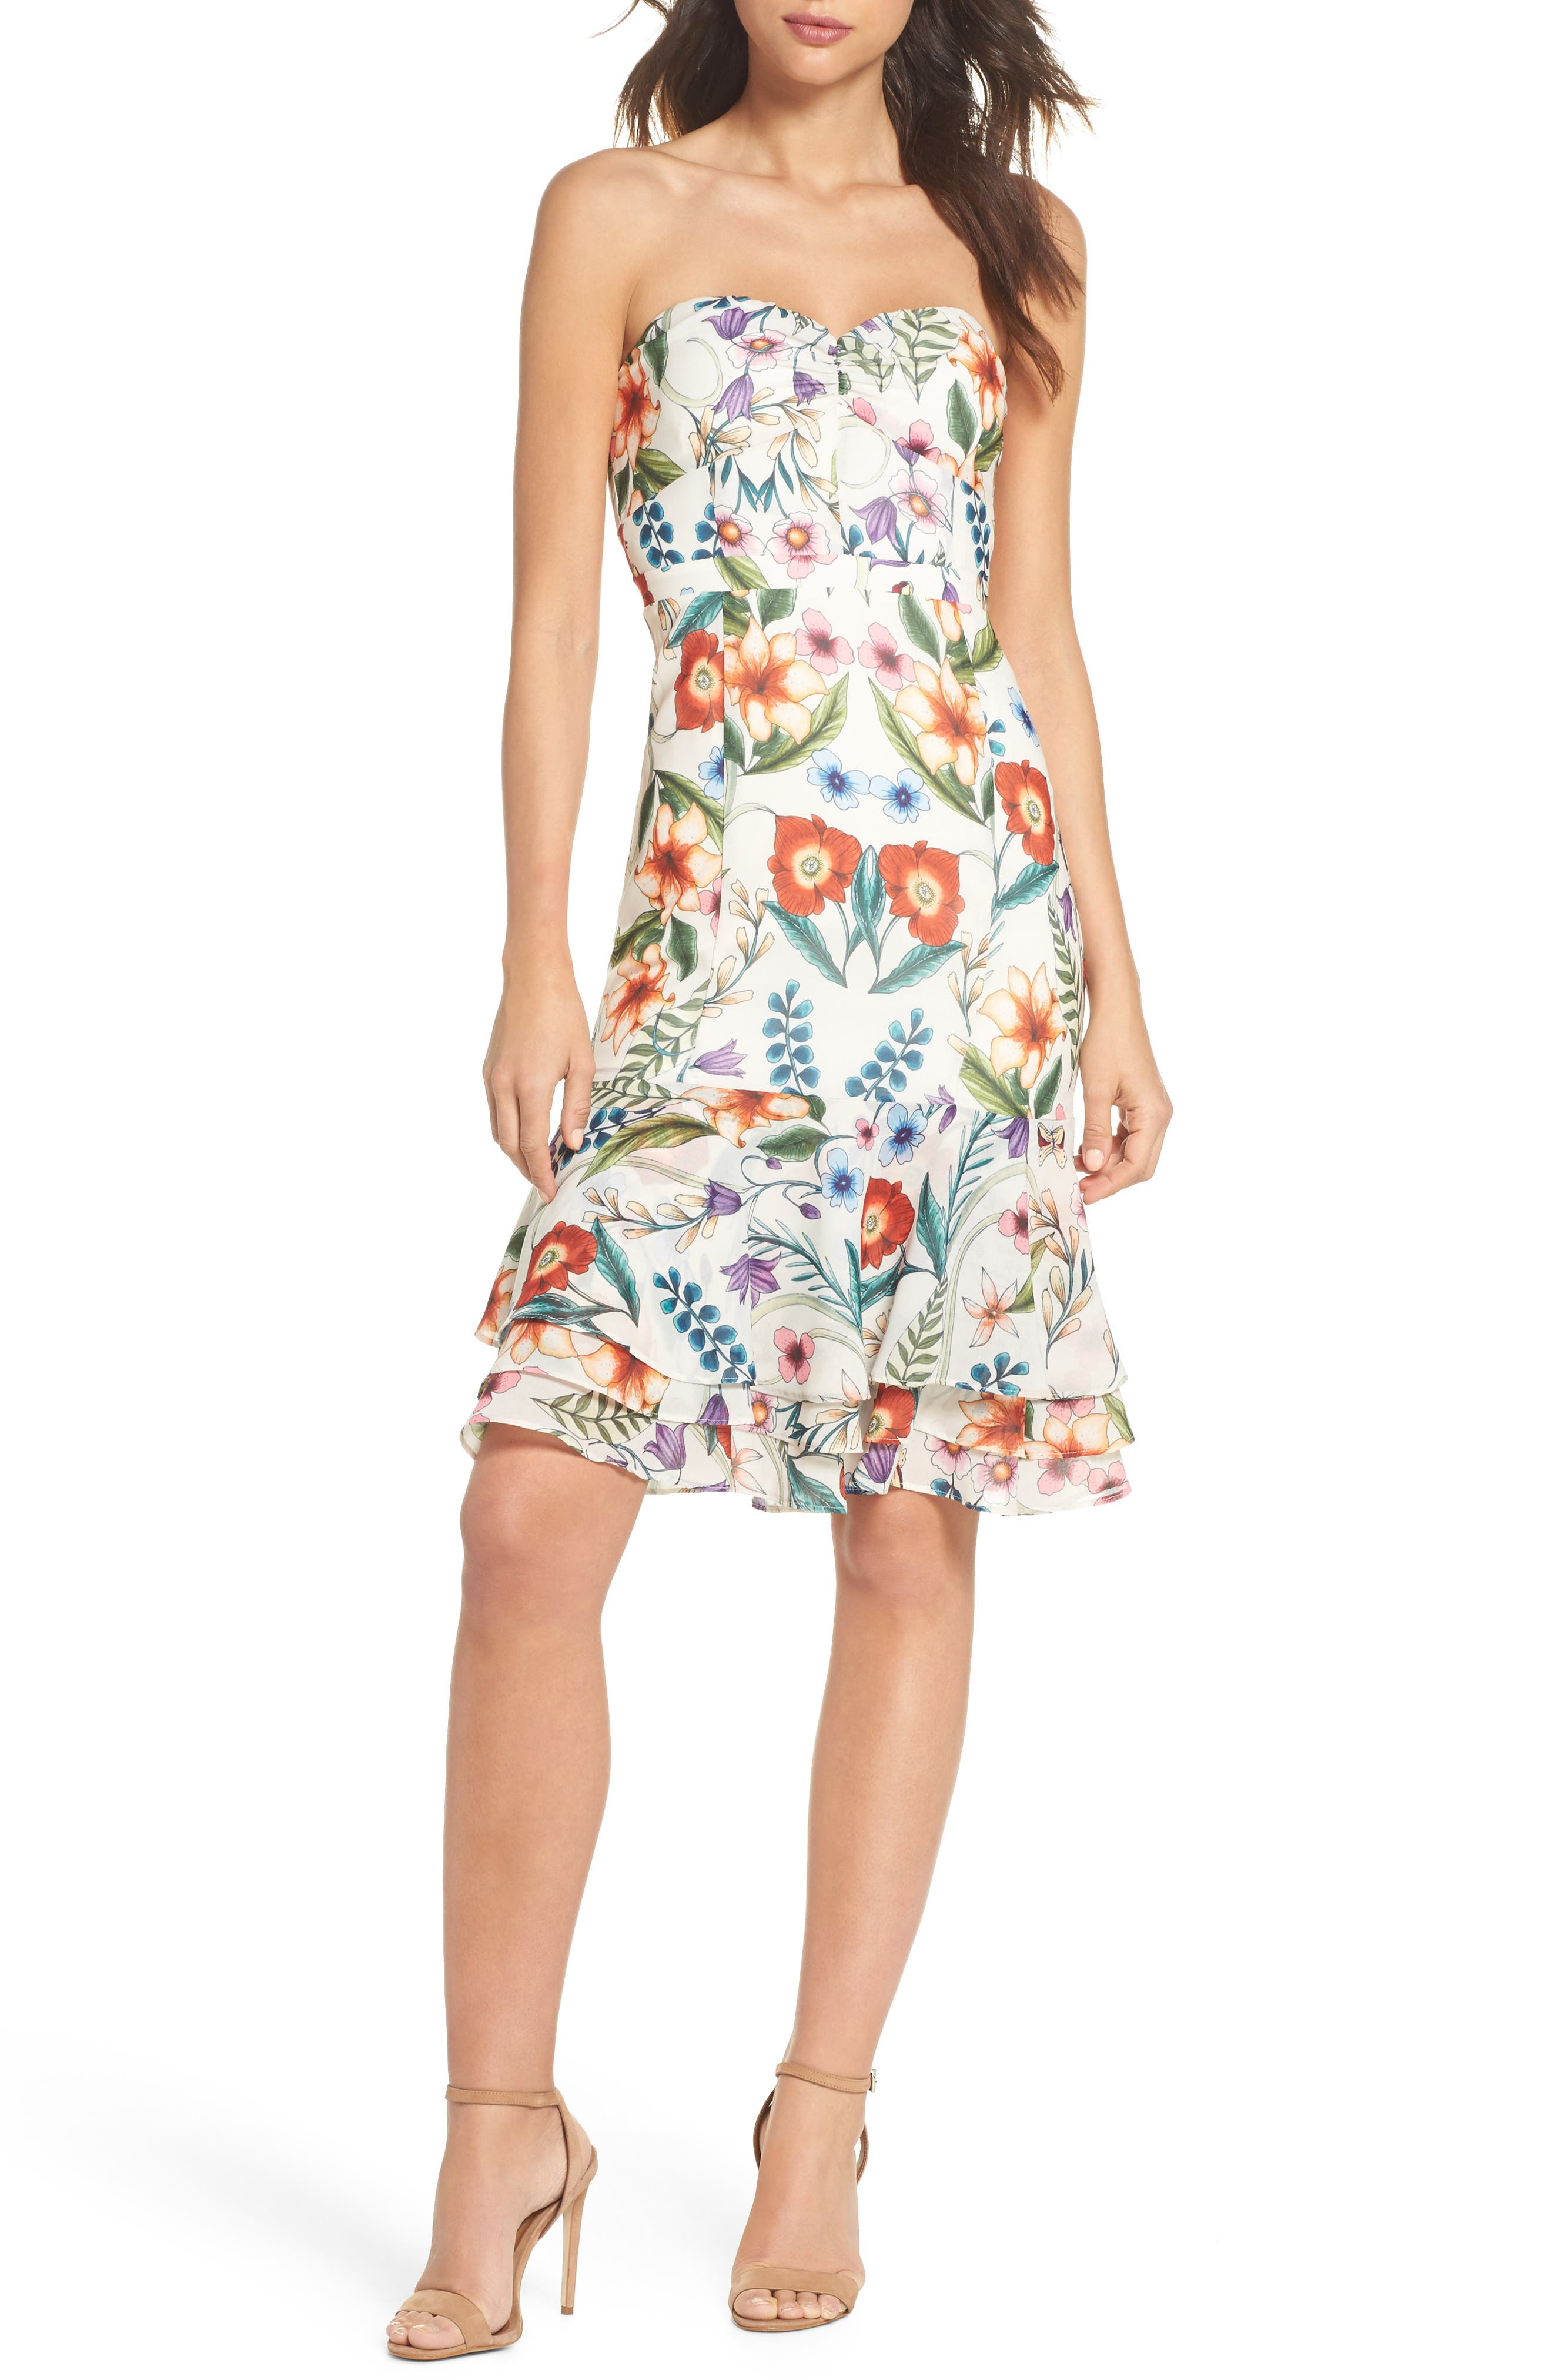 Cooper St Gardenia Strapless Dress